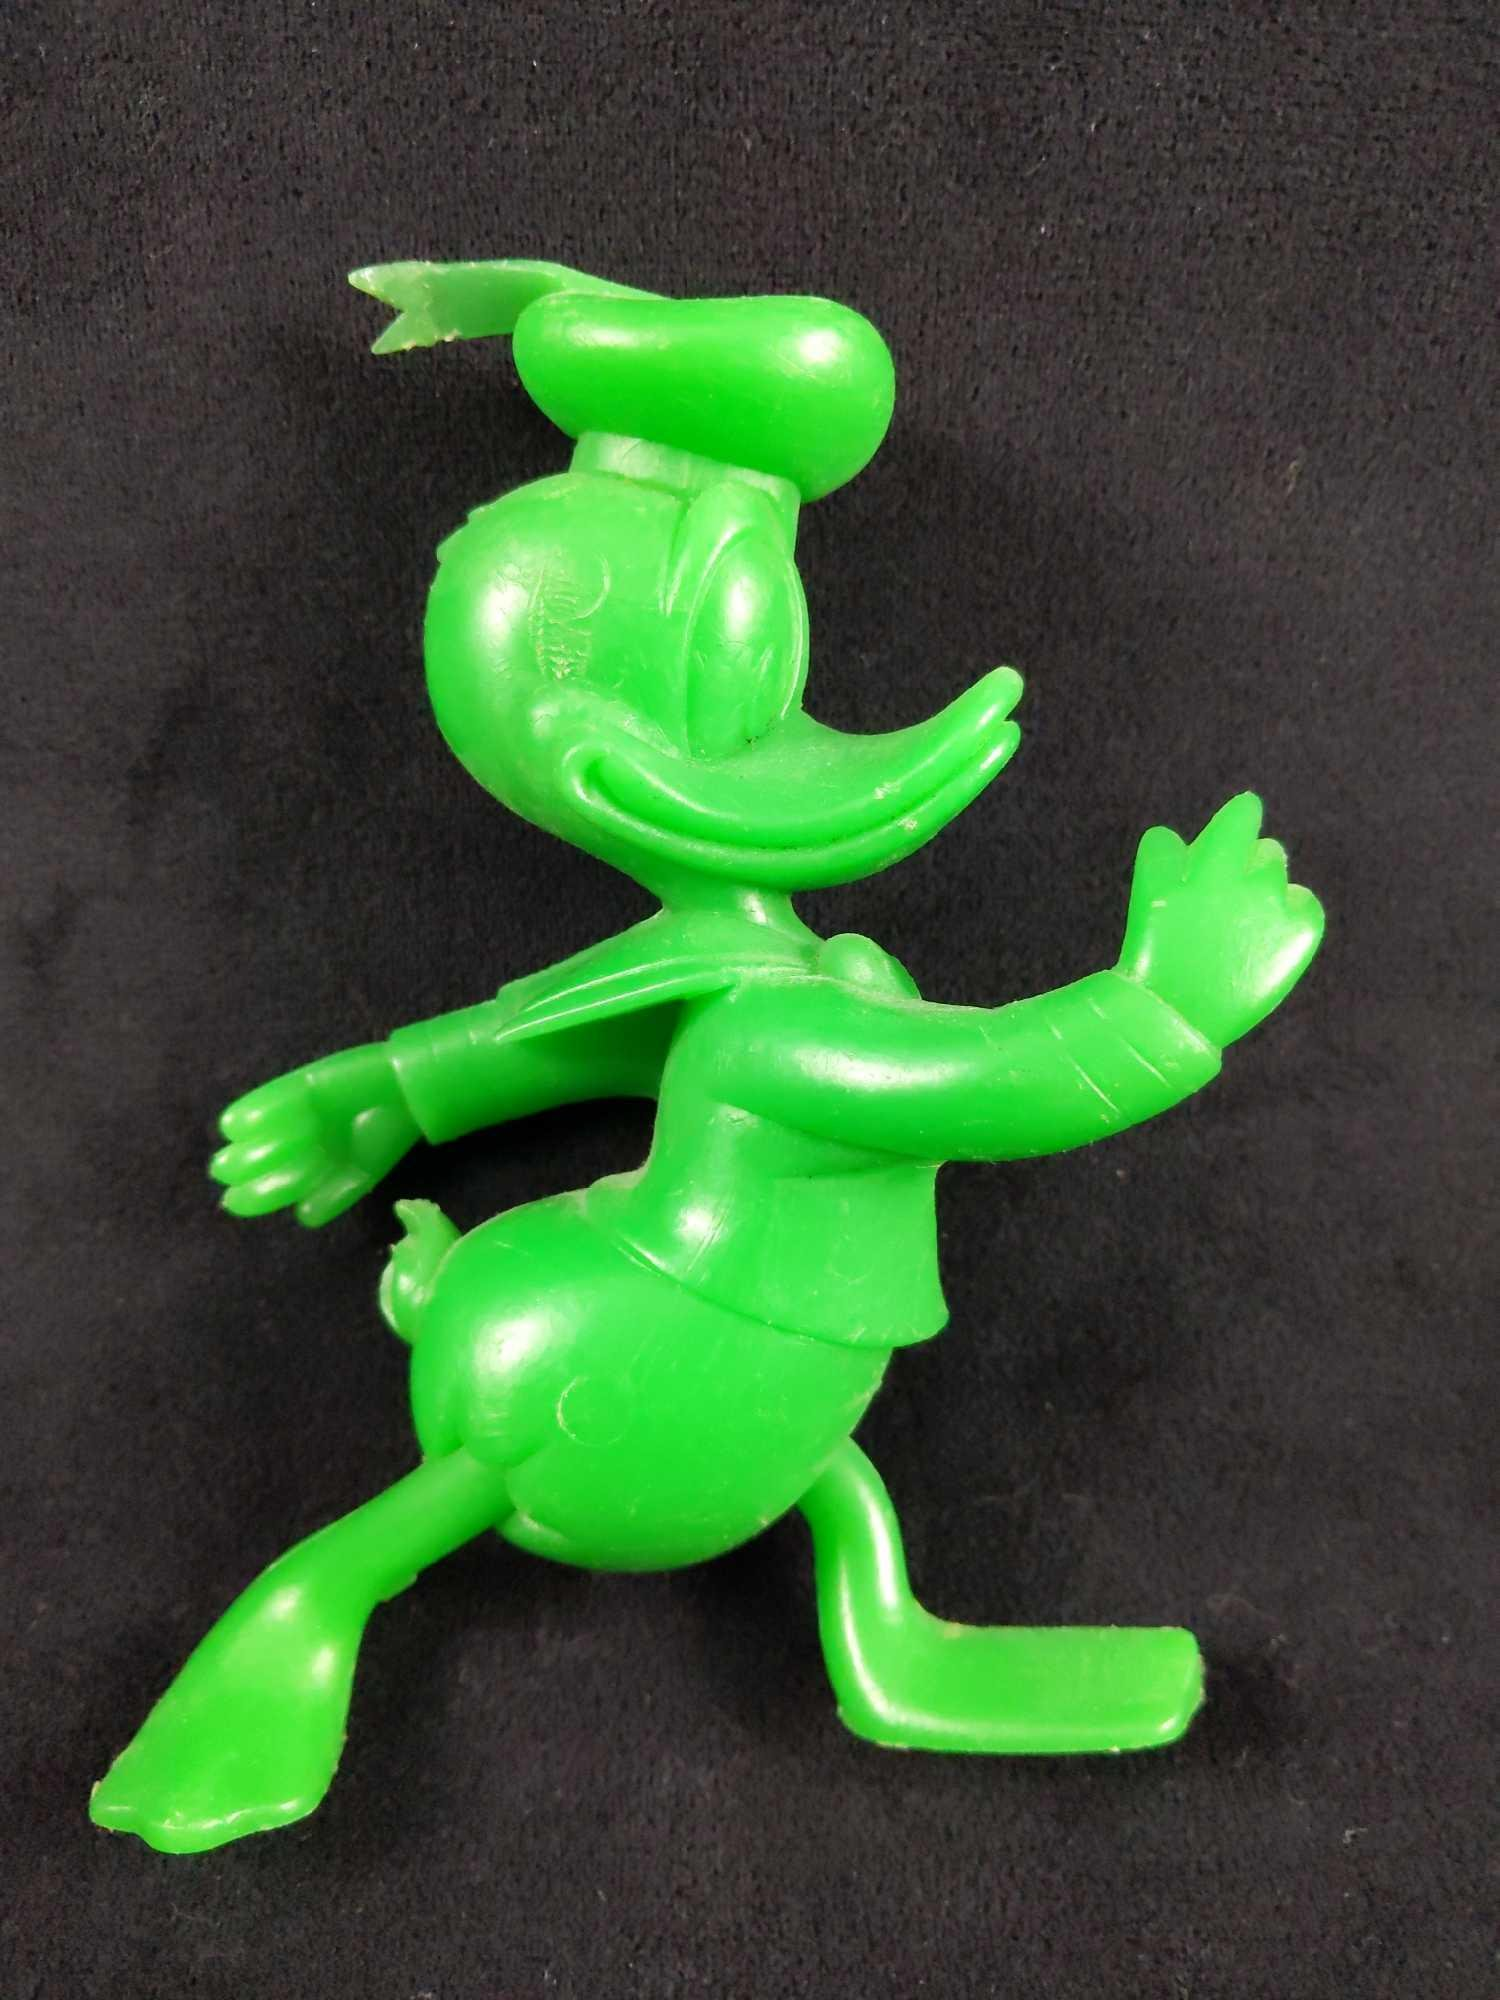 1971 Green Plastic Donald Duck Toy